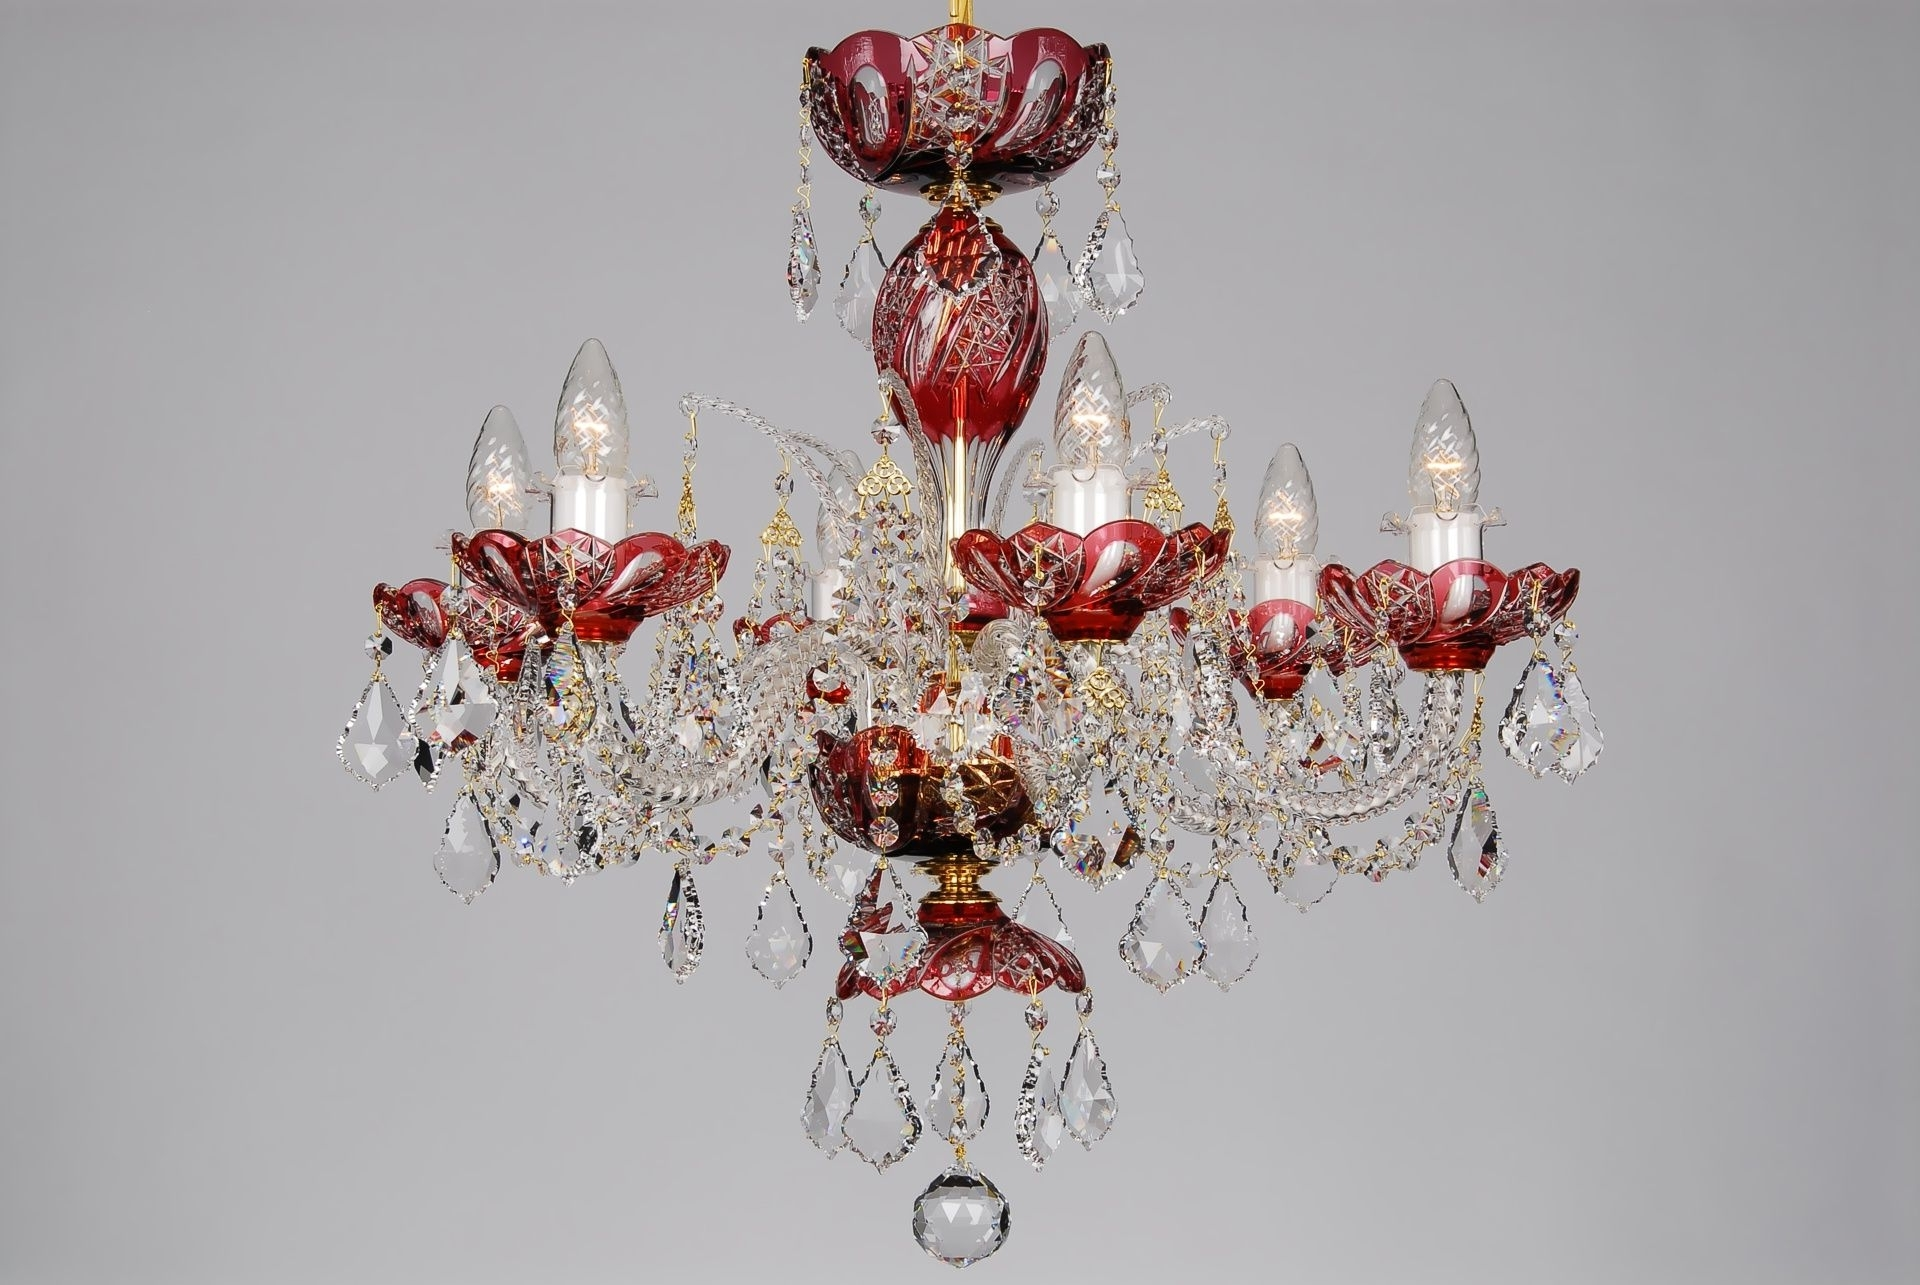 Small Red Chandelier For 2019 A Small Red Crystal Chandelier Decorated With Swarovski Trimmings (View 9 of 20)